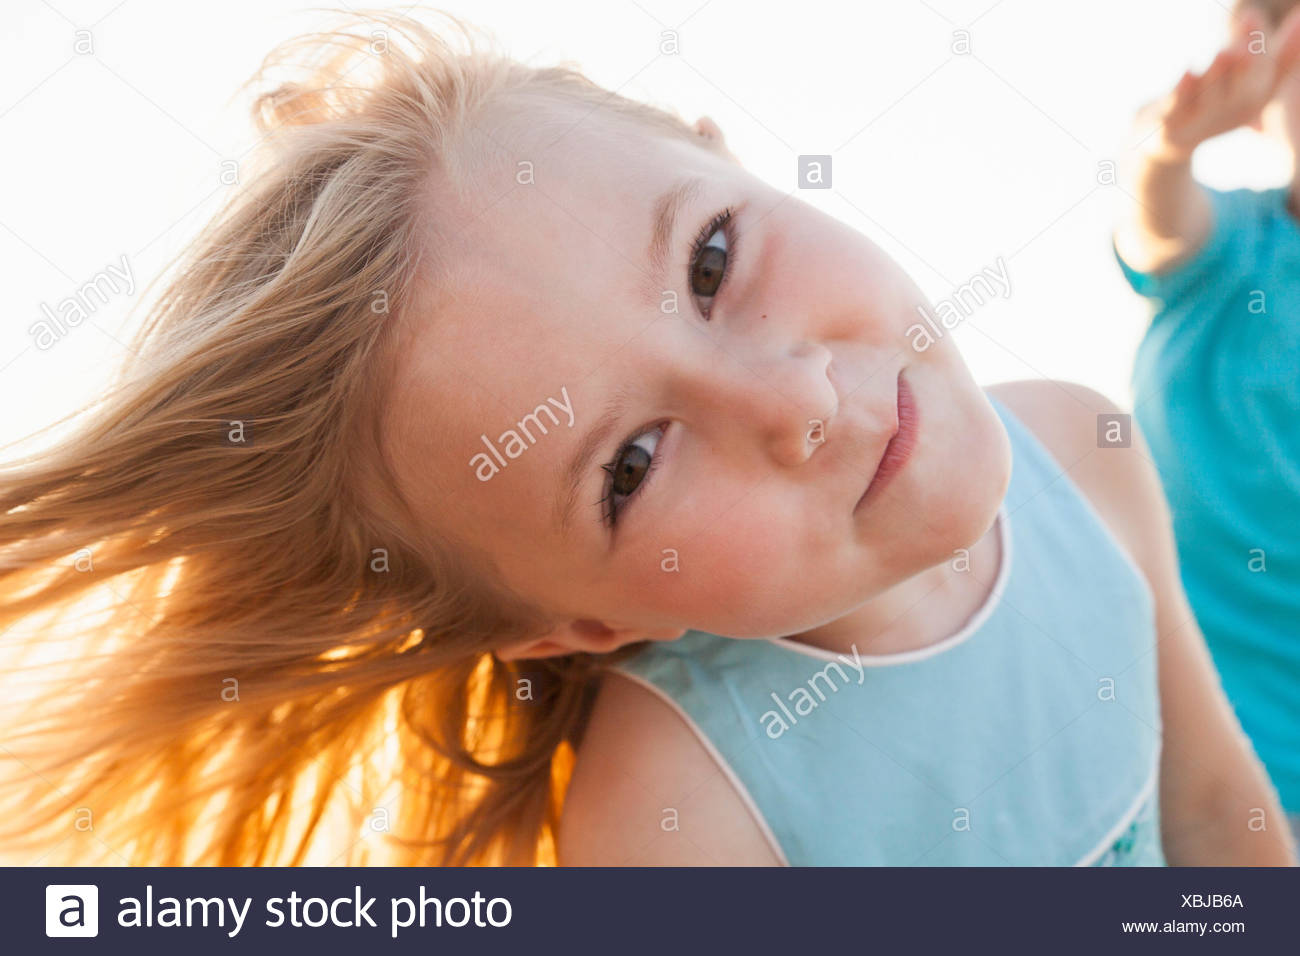 Portrait of girl, head cocked, looking at camera smiling - Stock Image